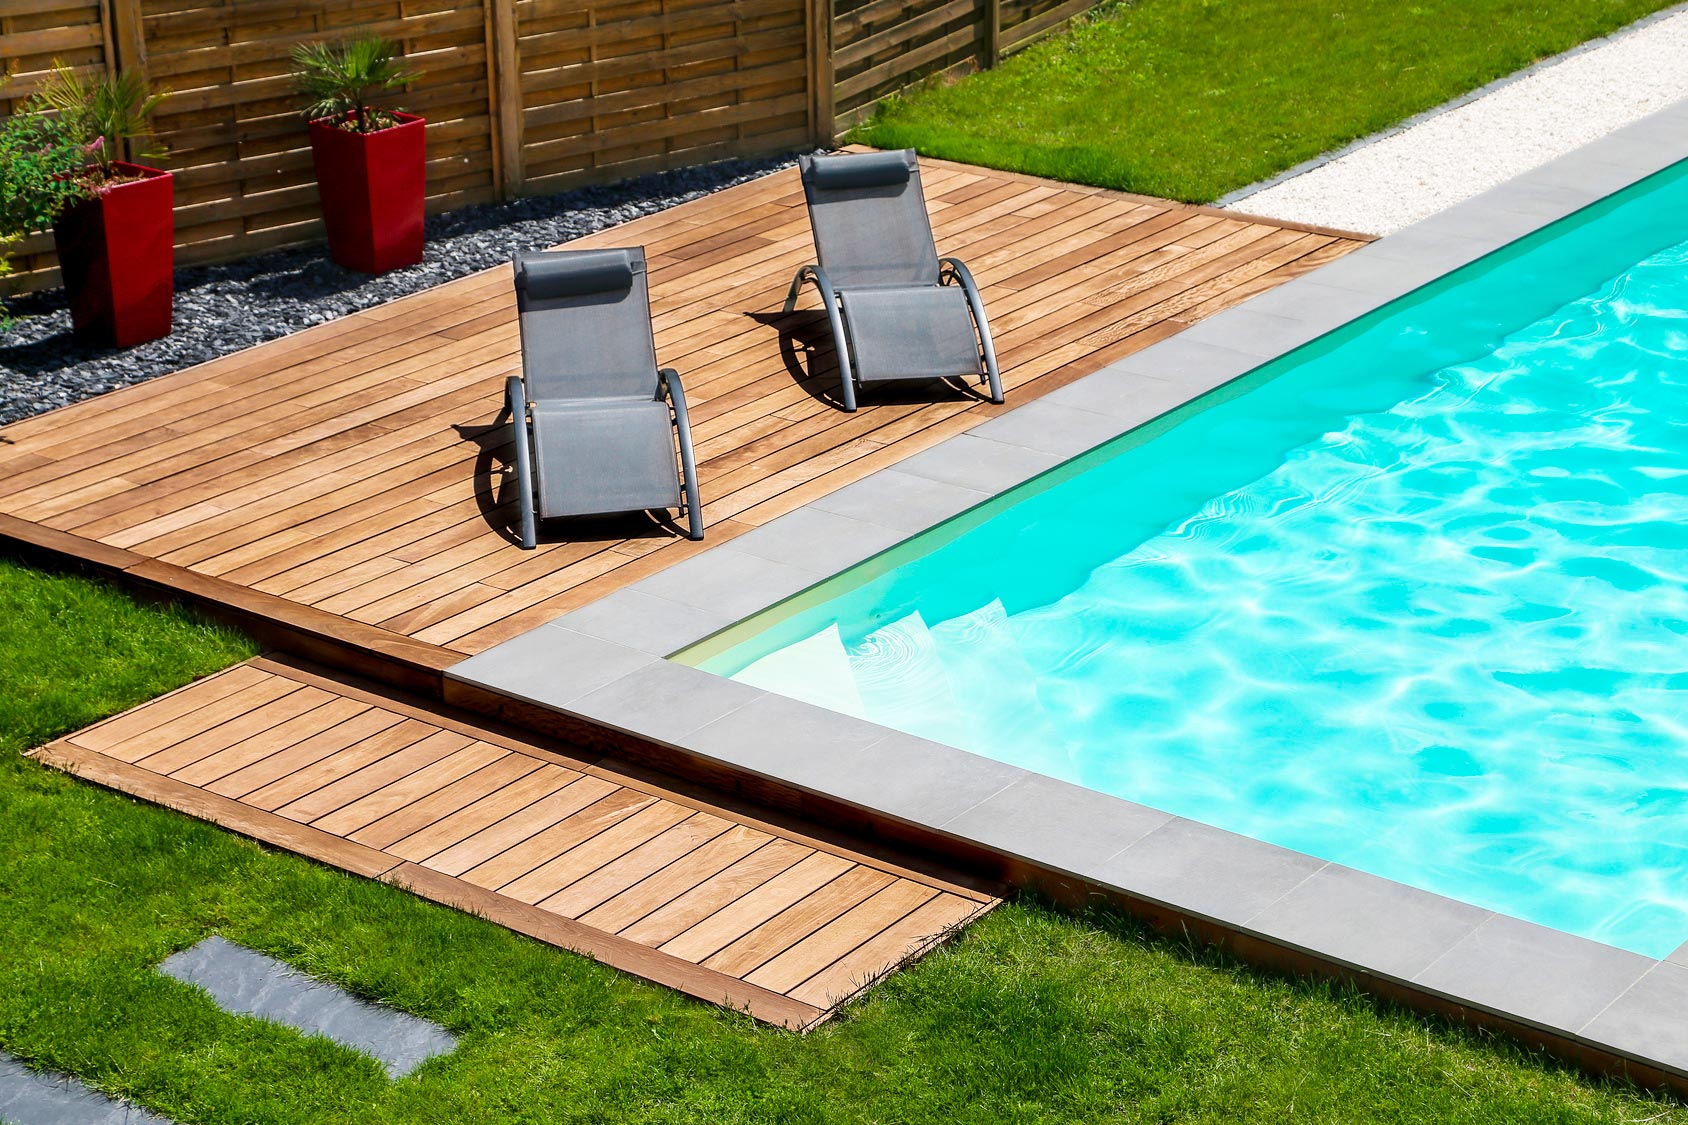 Piscine enterrée contemporaine sur mesure - Piscines Design